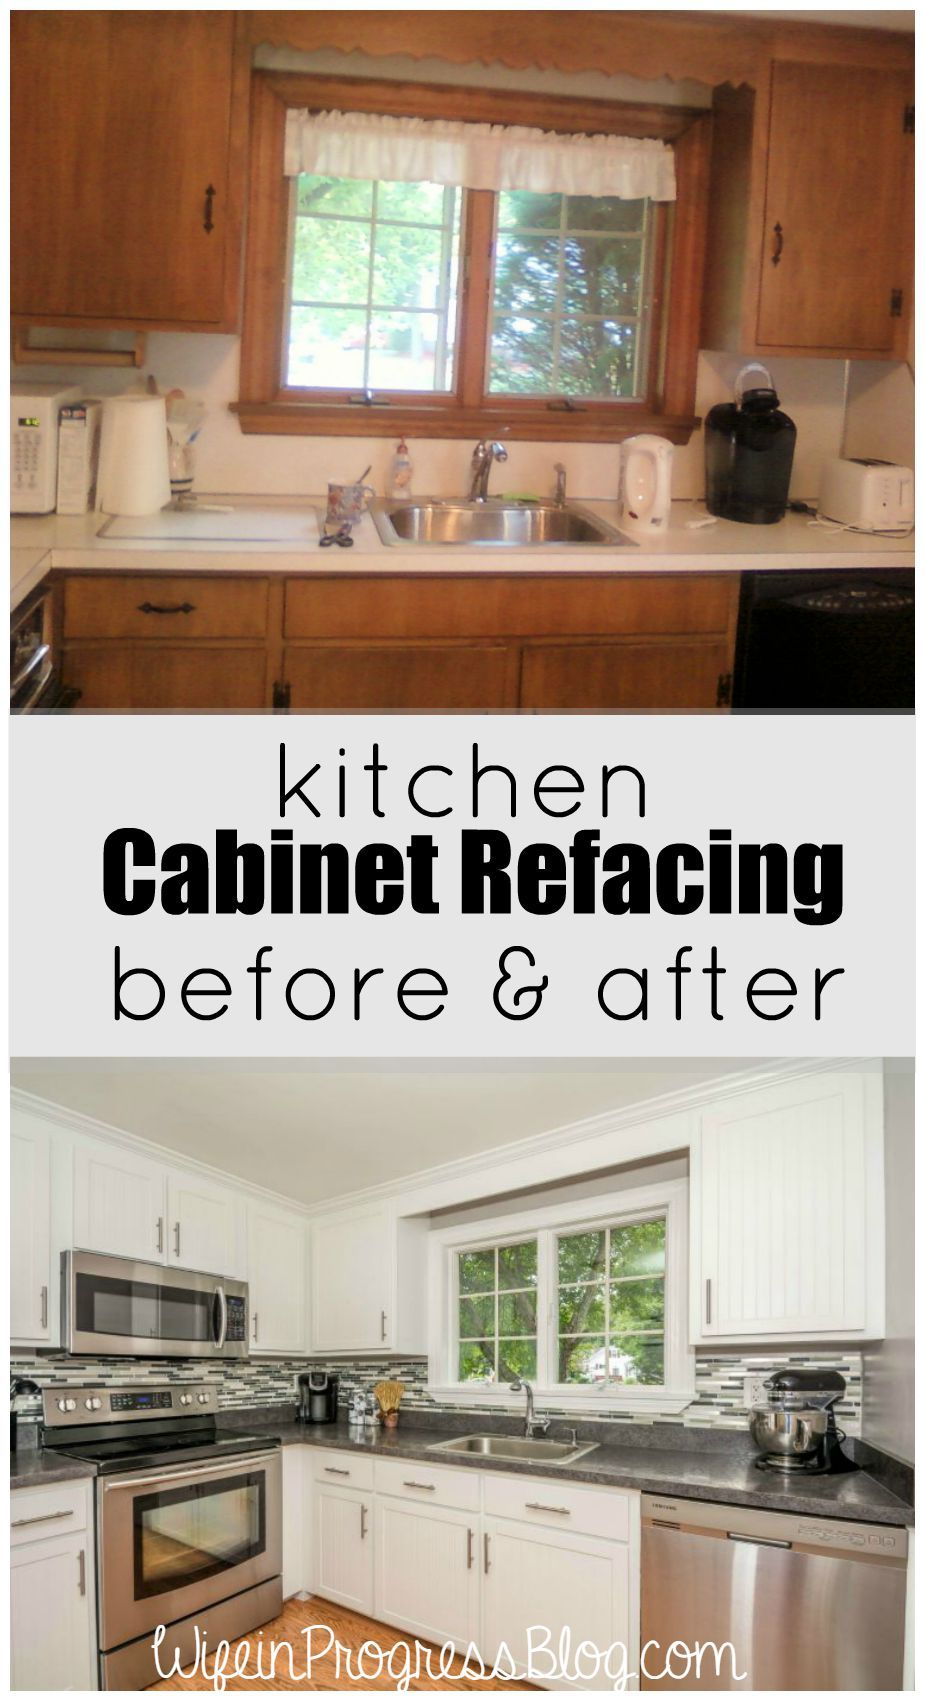 kitchen cabinet refacing a cheaper solution than ripping